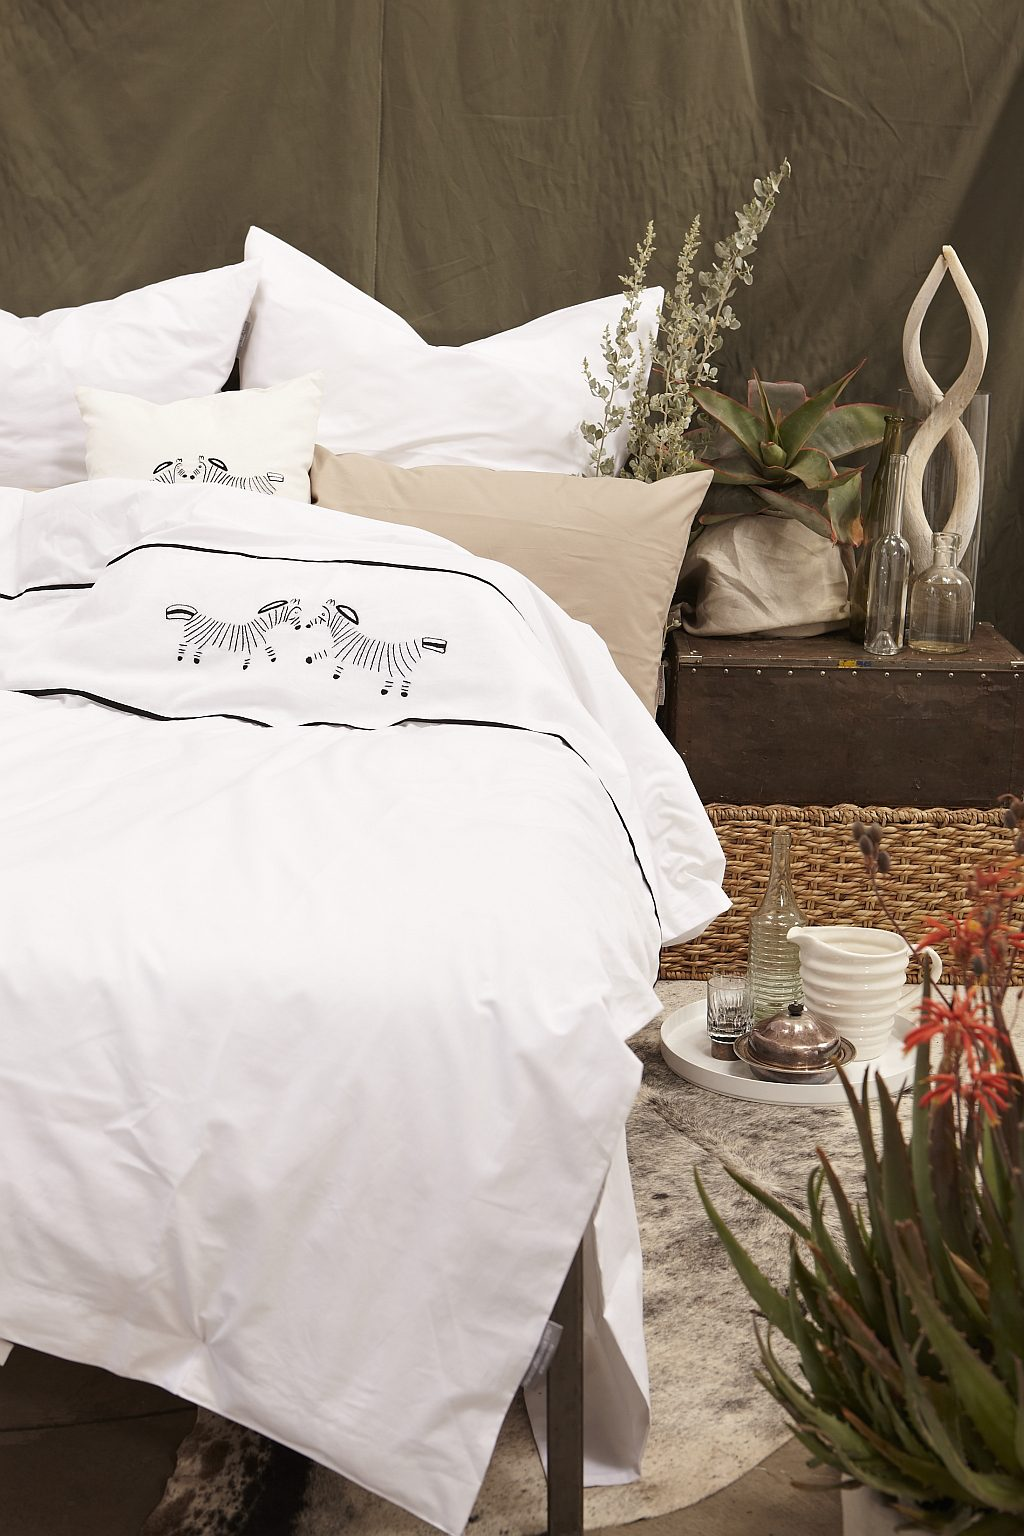 Hand Embroidered Duvet cover - Zebra